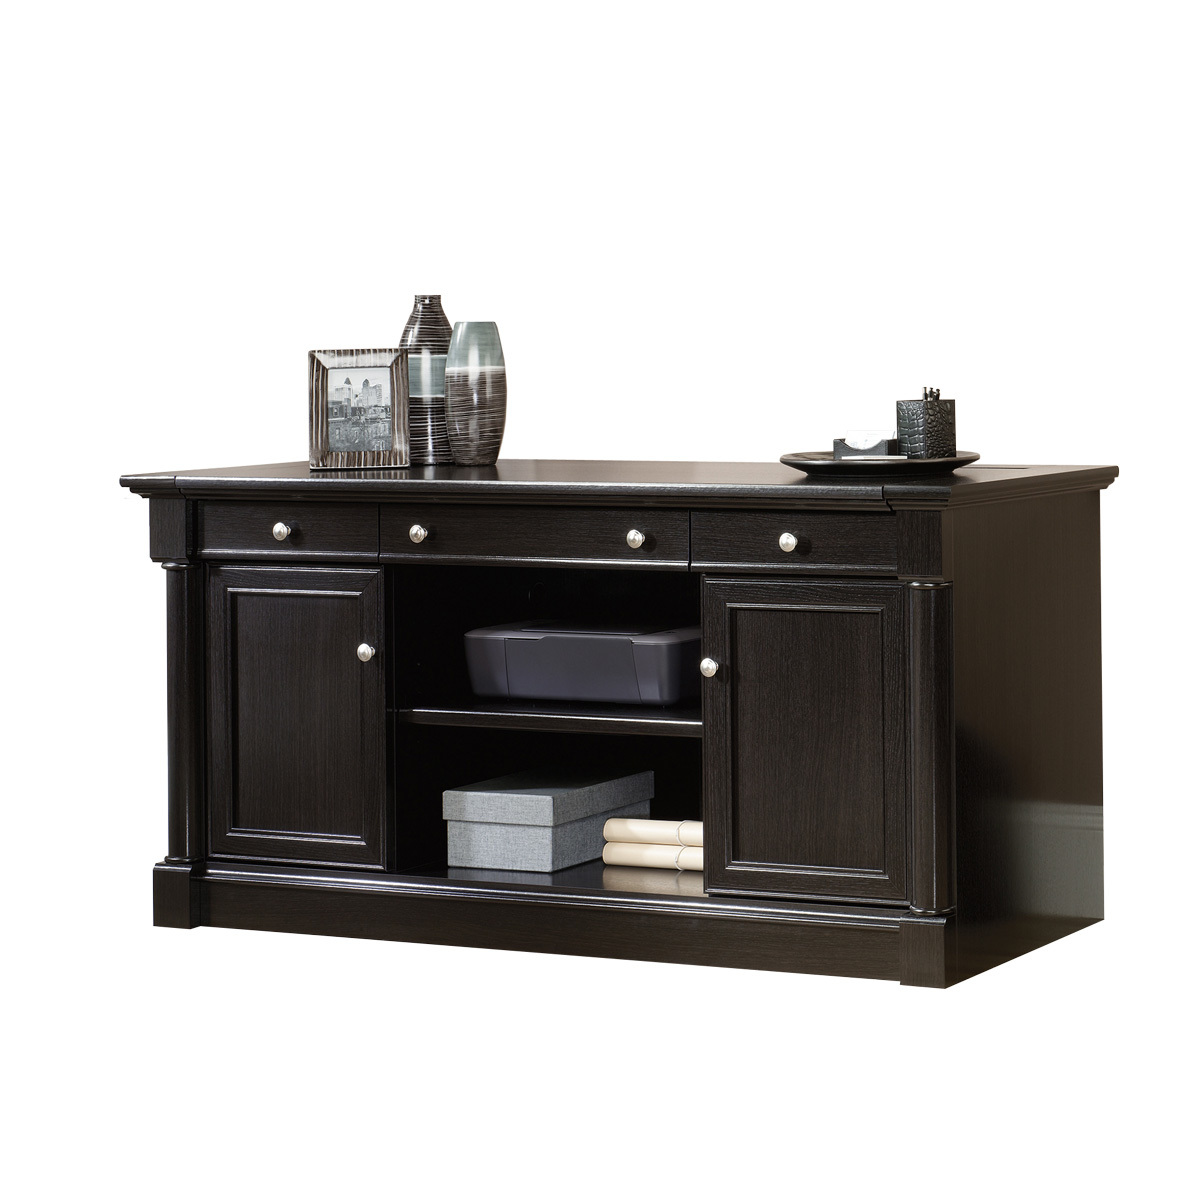 Sauder Palladia Credenza 417698 Sauder The Furniture Co